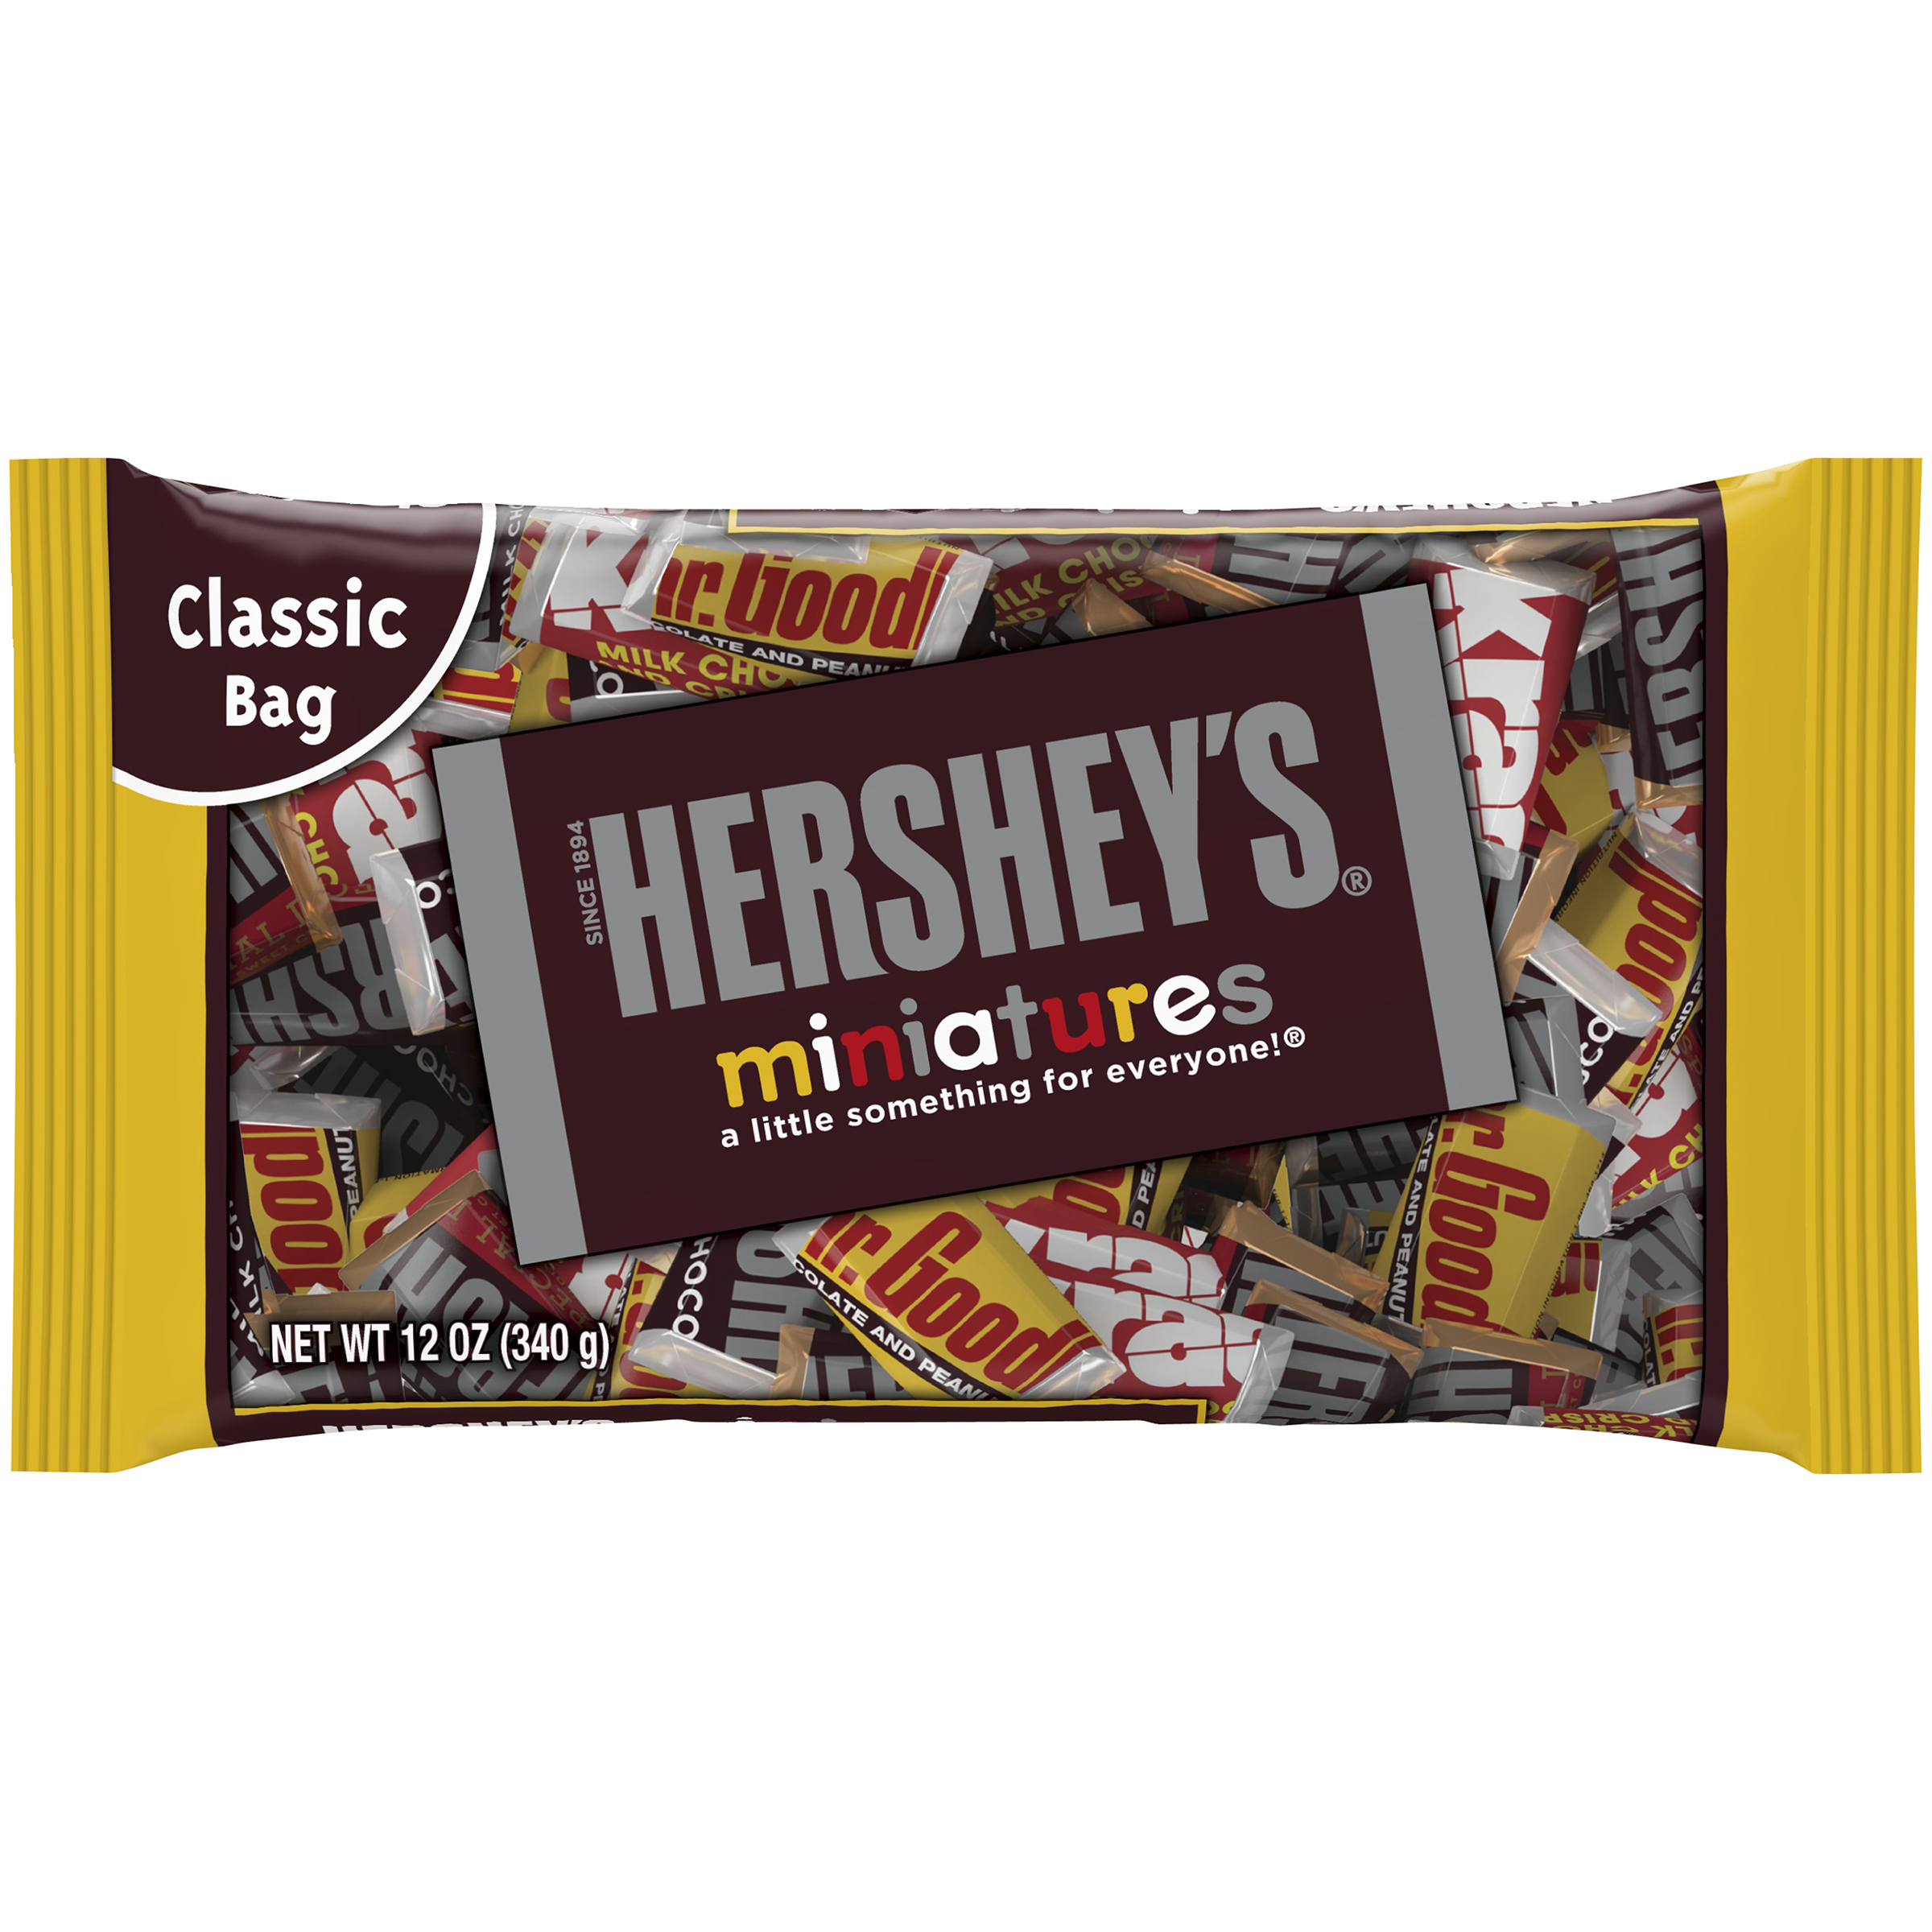 HERSHEY'S Miniatures Assortment, 13 oz